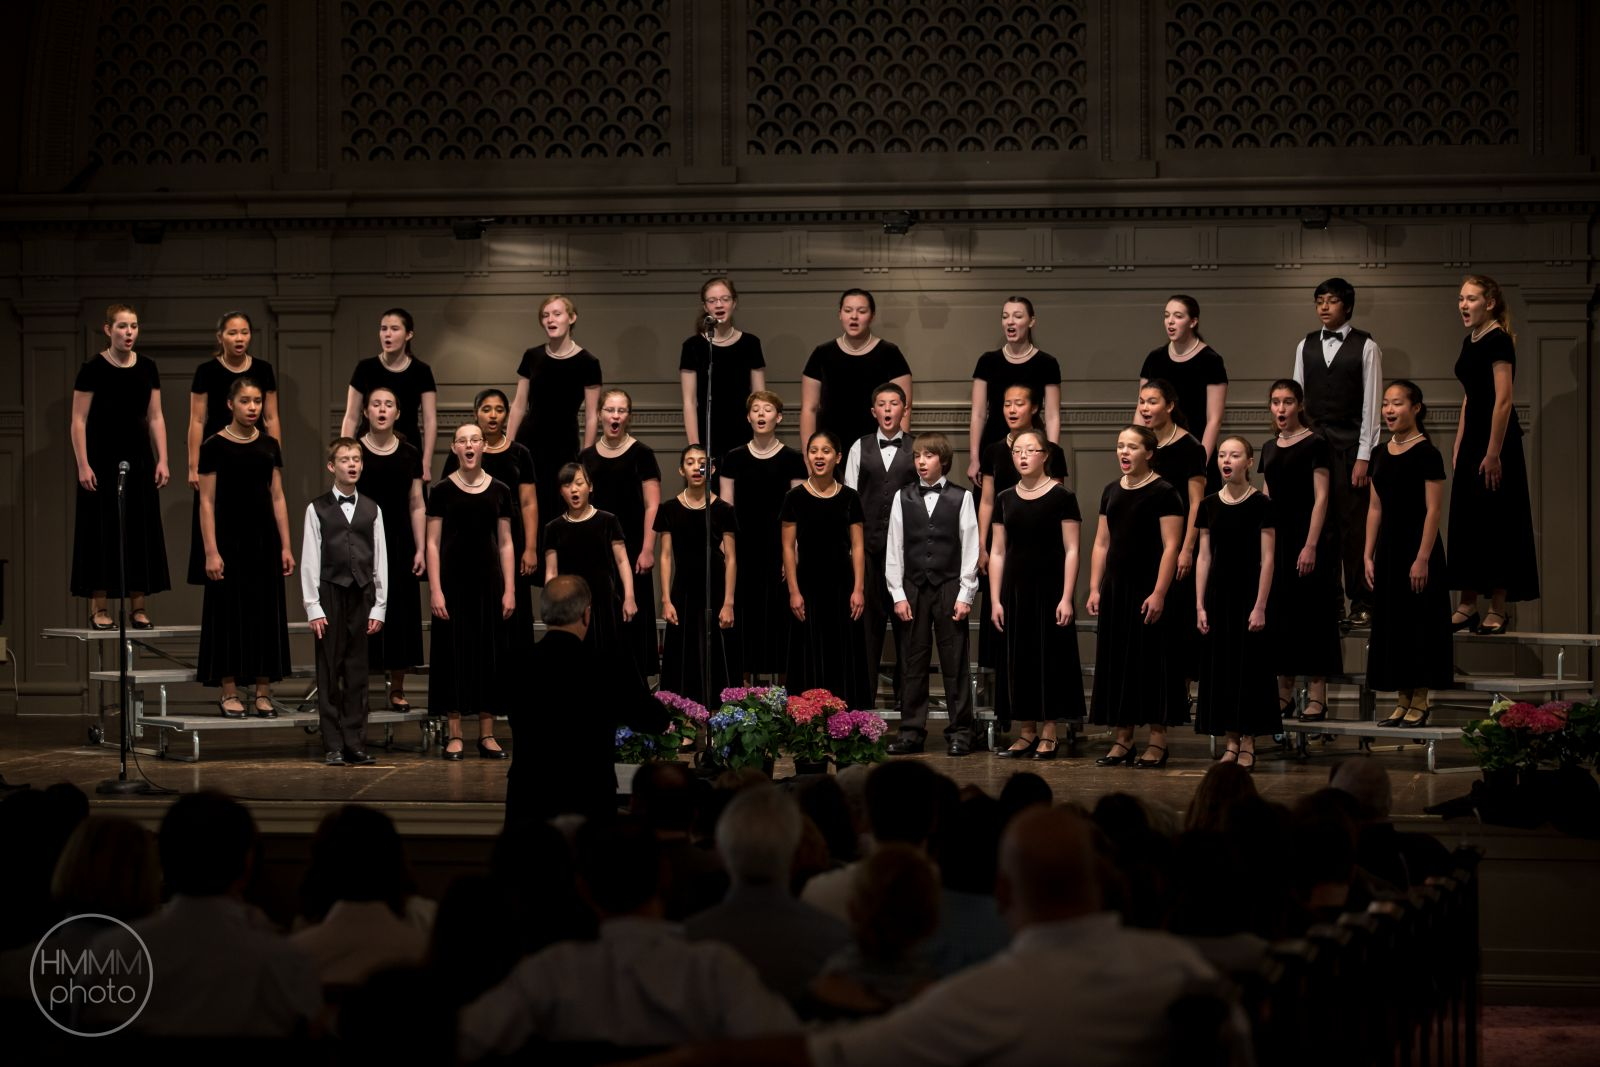 Columbia Children's Choir - Bel Canto